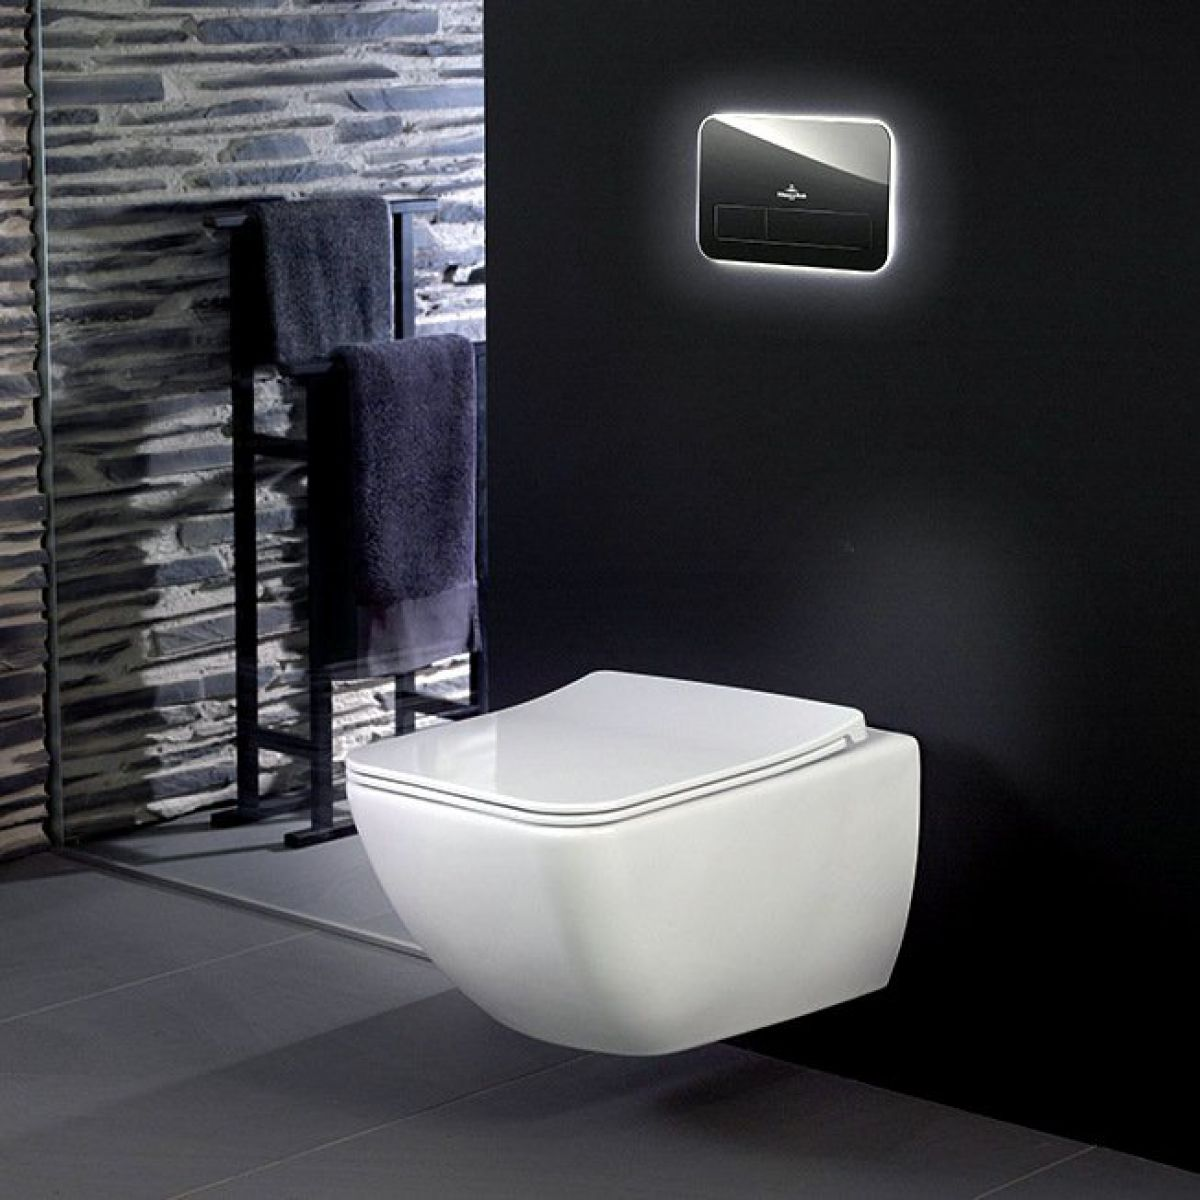 villeroy boch venticello rimless wall hung toilet uk. Black Bedroom Furniture Sets. Home Design Ideas